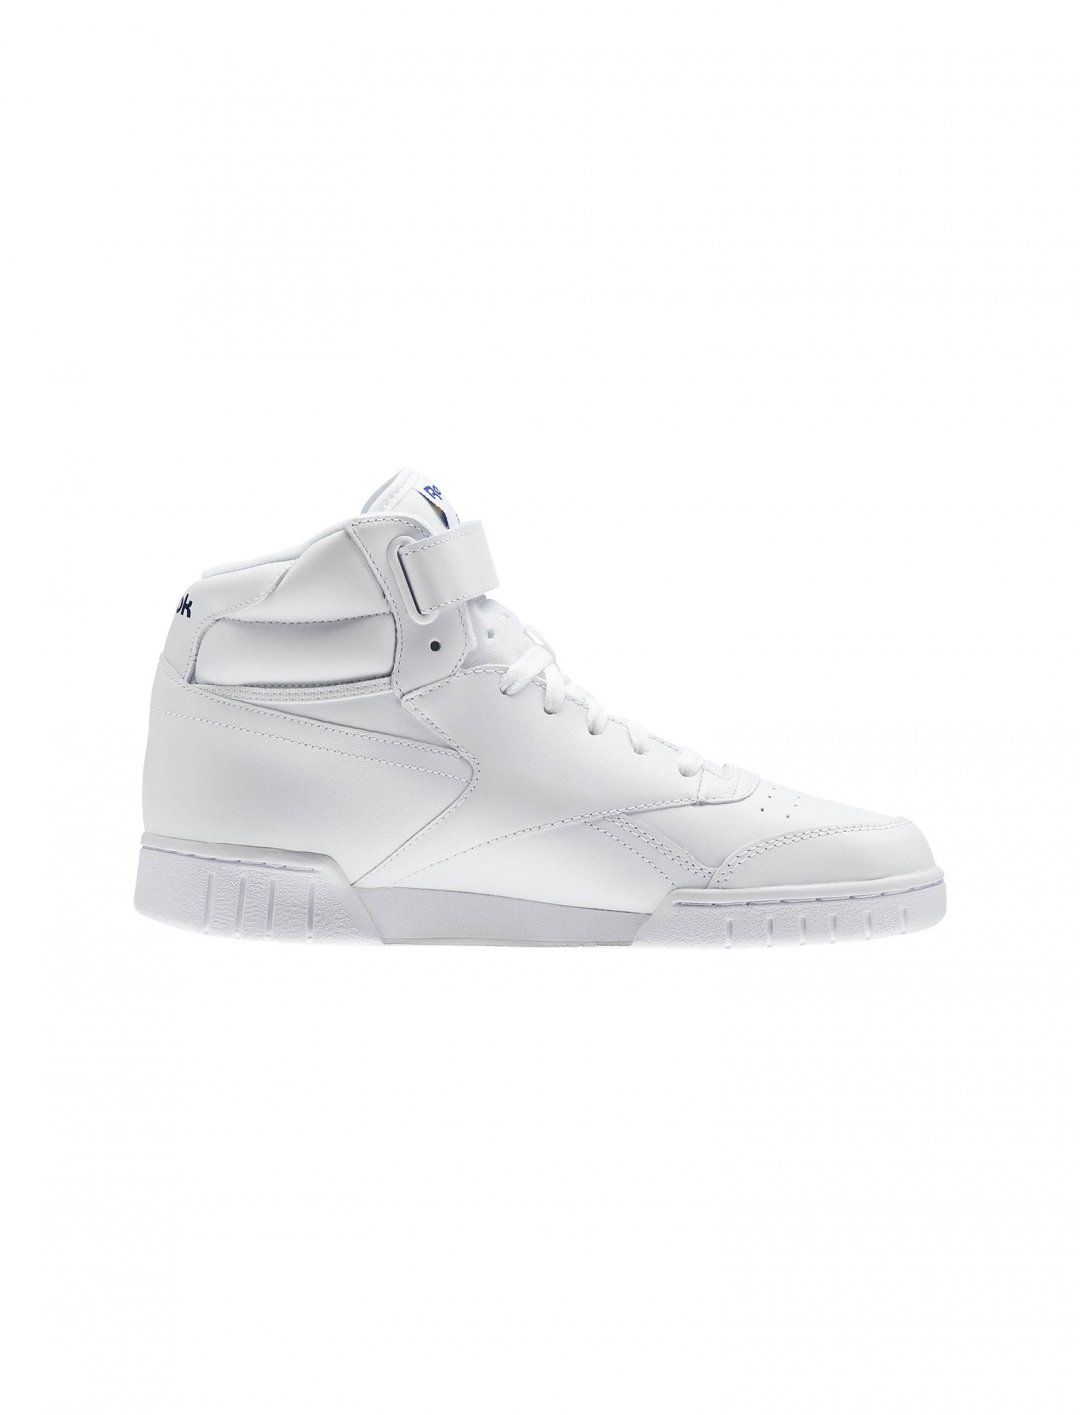 "Reebok Hi-Top Trainers {""id"":12,""product_section_id"":1,""name"":""Shoes"",""order"":12} Reebok"